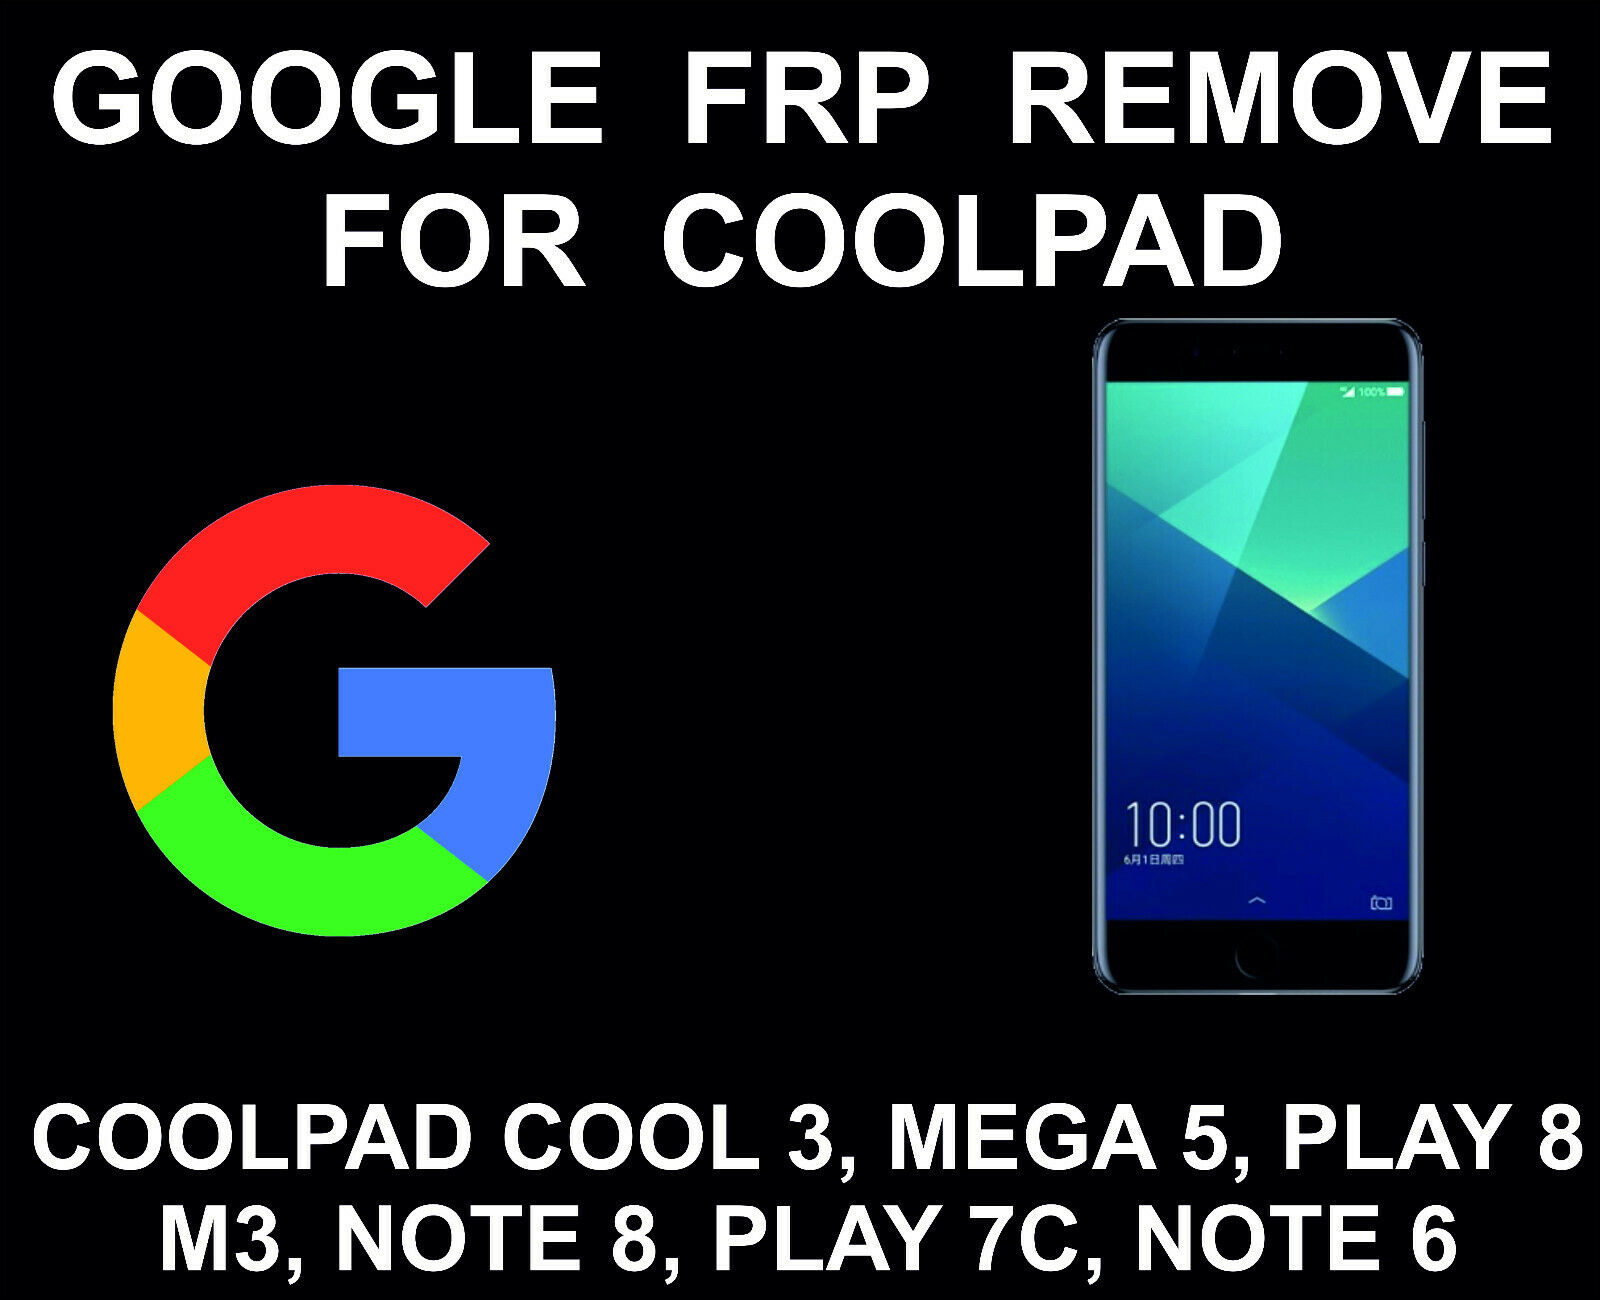 Google FRP Account Unlock Service, Bypass, Coolpad Cool 3, Mega 5, Play 8,  M3 · $15 00 · Installations & Support